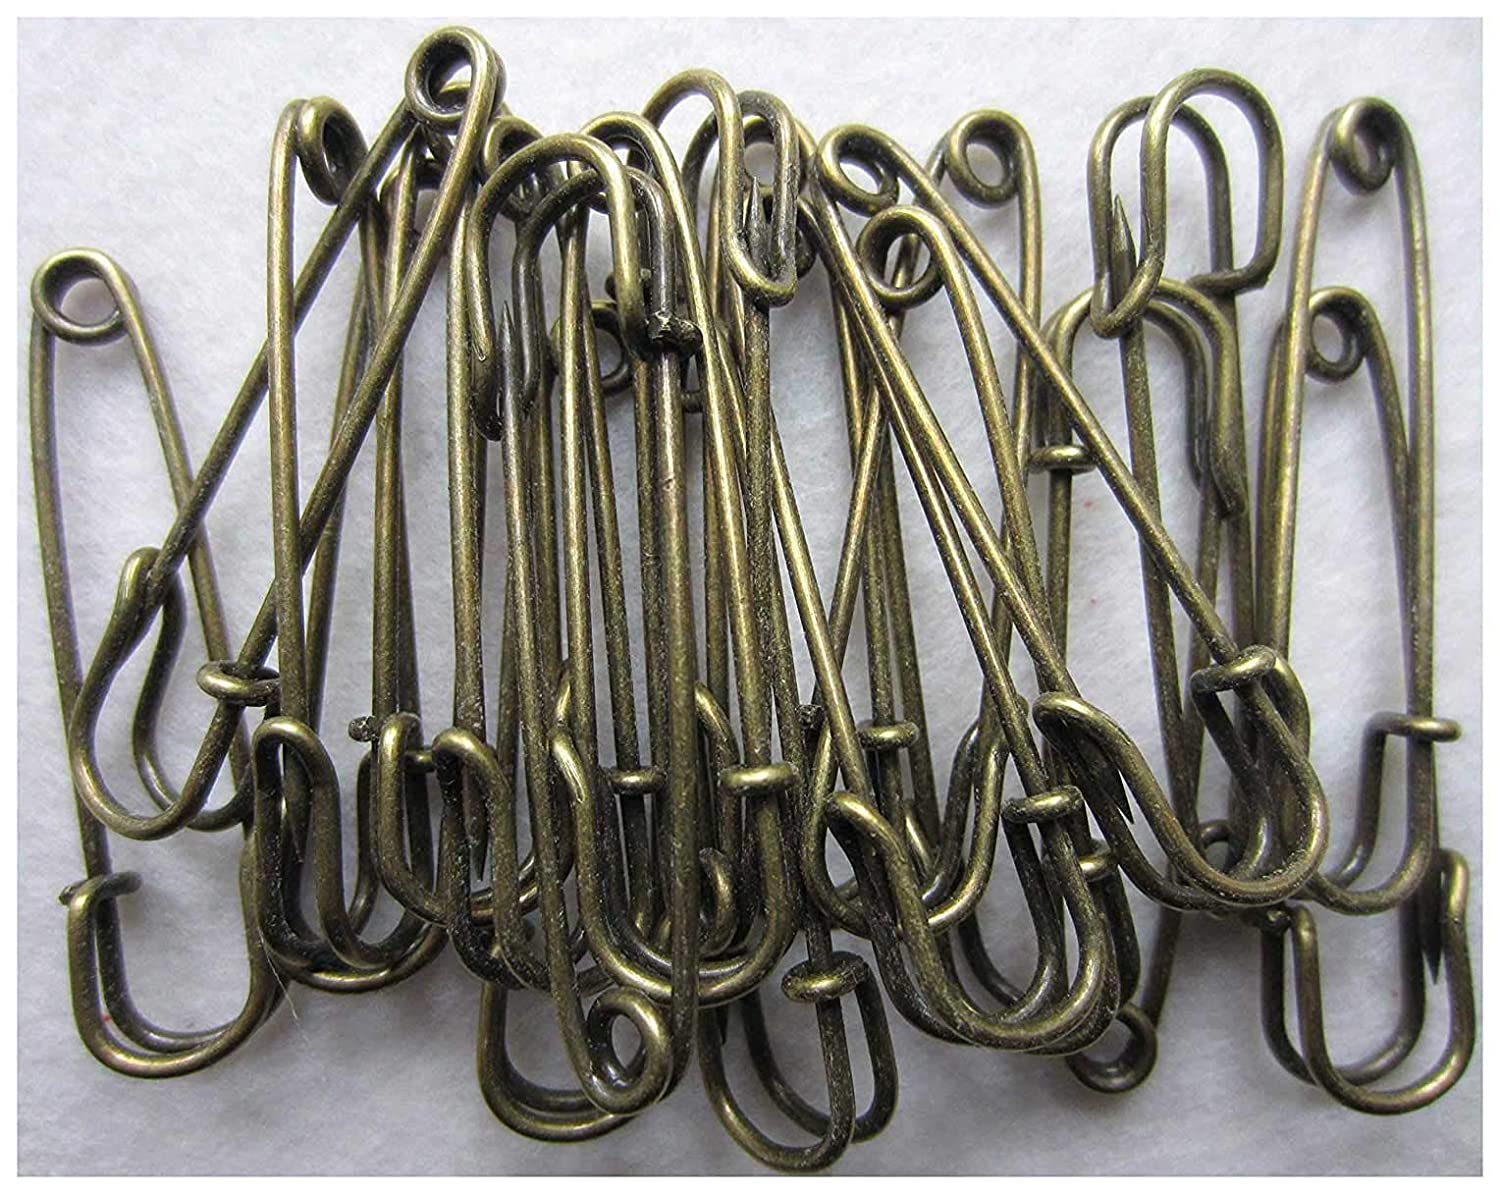 LeBeila Heavy Duty Safety Pins Stainless Steel Safety Pins for Blankets//Skirts//Kilts//Crafts Metal Large 3 Inch in Bulk 20 PCS, Silver White